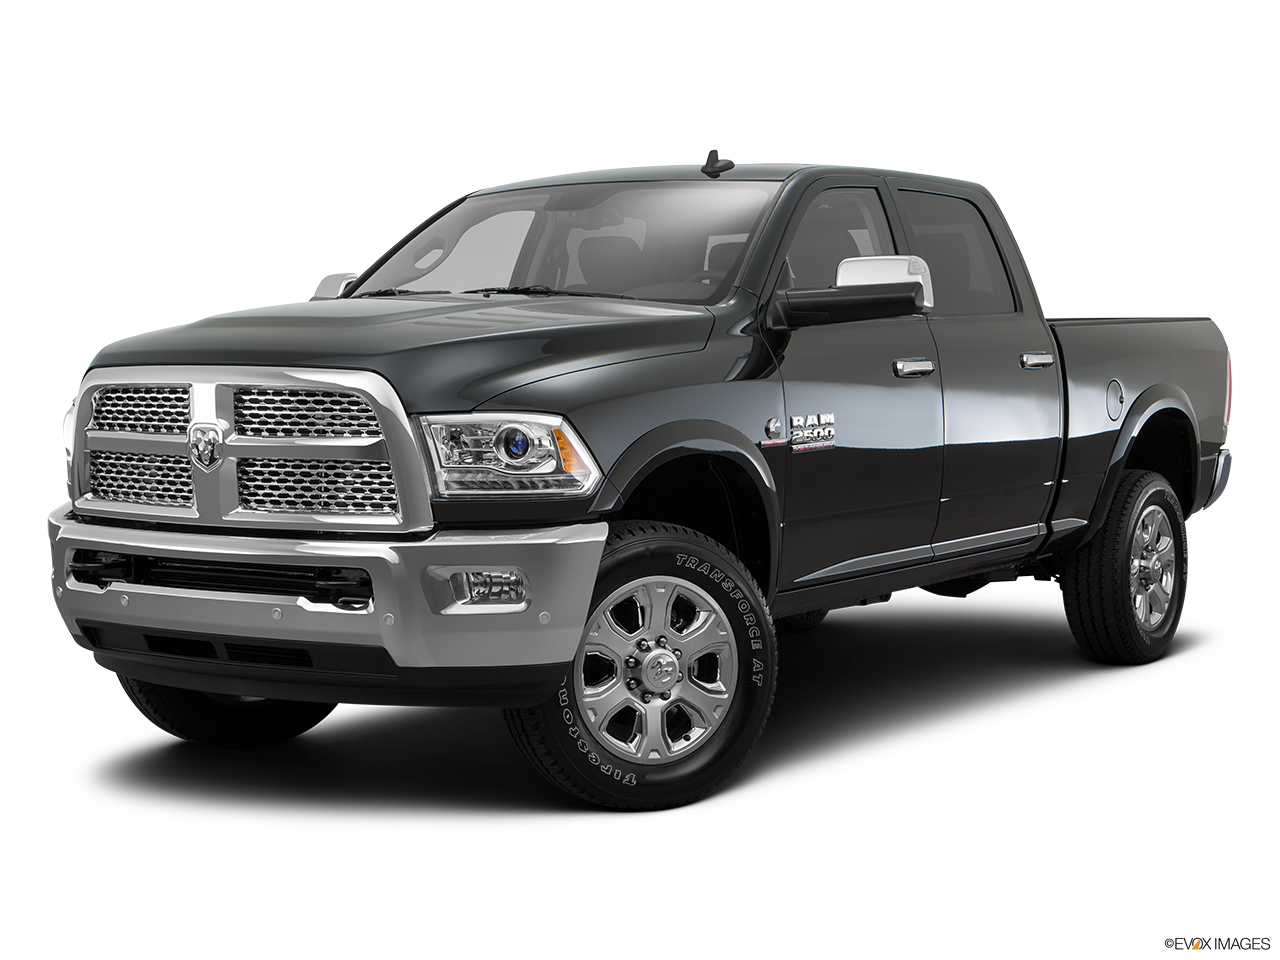 Test Drive A 2016 RAM 2500 DRW at Carl Burger Dodge Chrysler Jeep Ram World in La Mesa